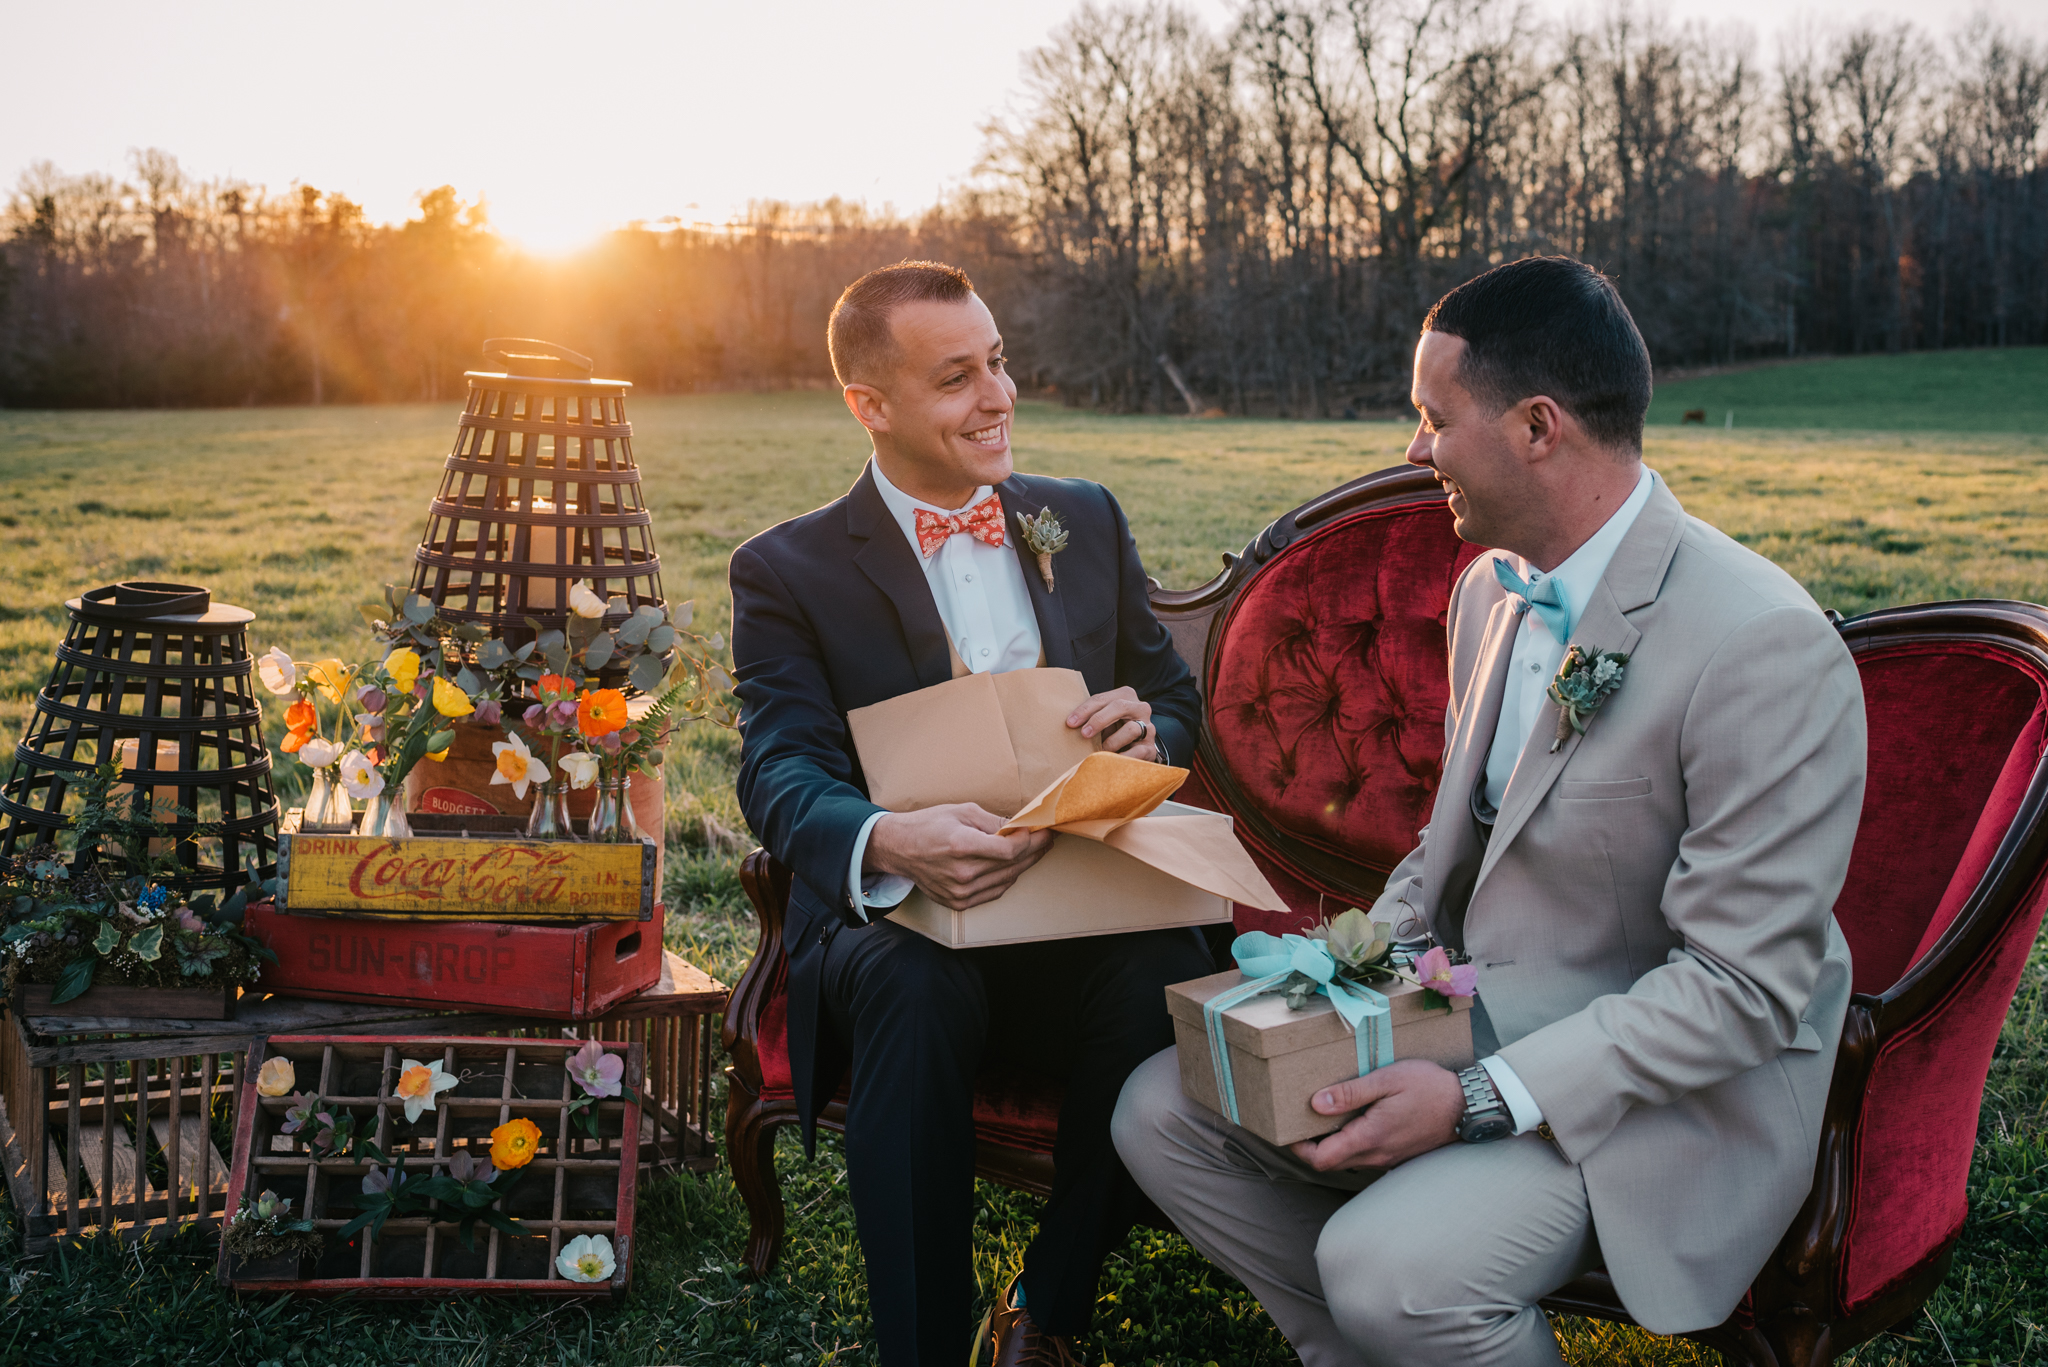 The grooms sit on the red couch in the sunset and give each other gifts during the rustic styled engagement session with Rose Trail Images at Windy Hill Farm near Raleigh, NC.